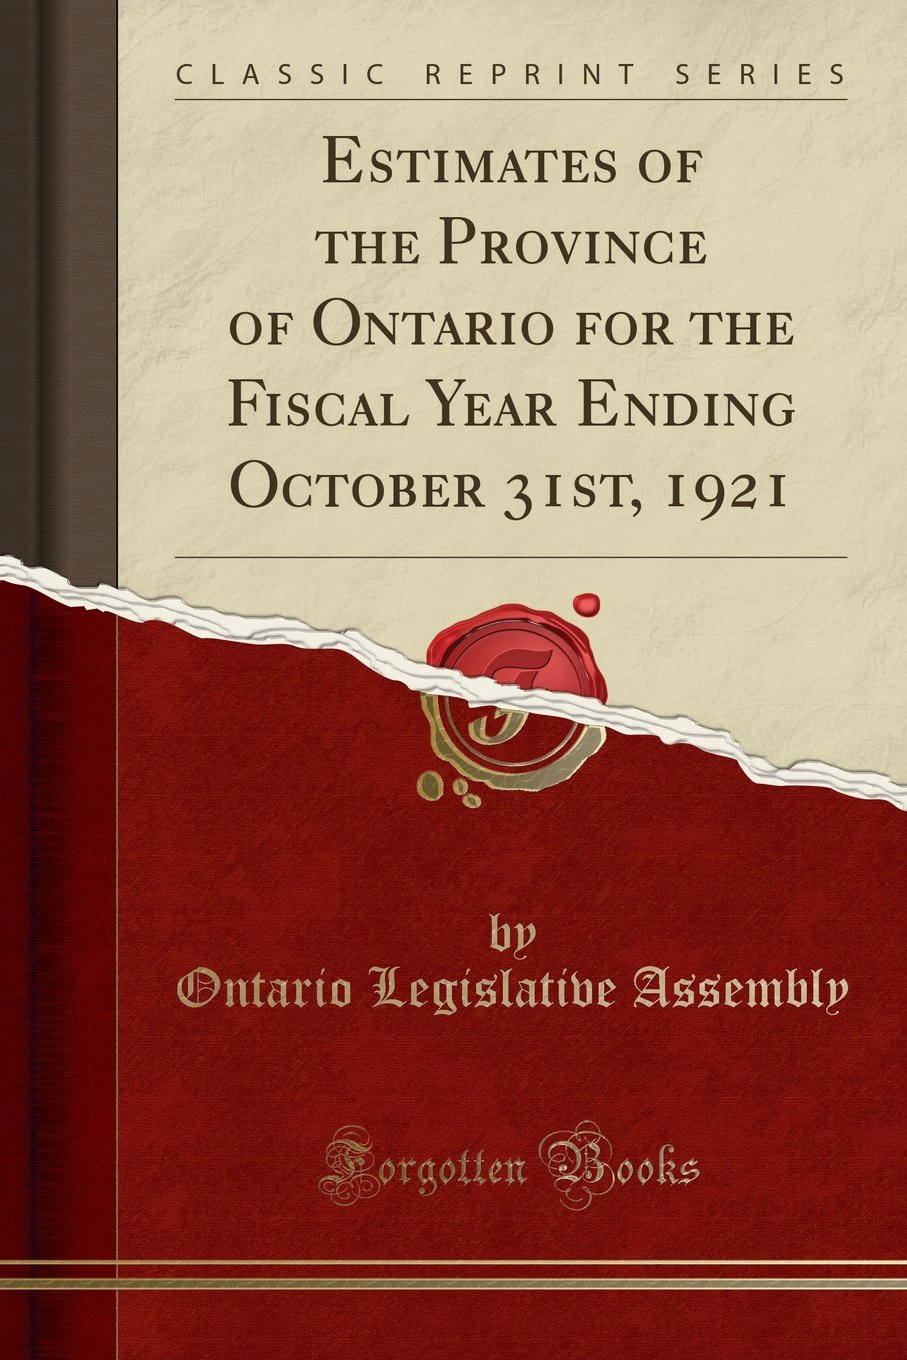 Read Online Estimates of the Province of Ontario for the Fiscal Year Ending October 31st, 1921 (Classic Reprint) ebook